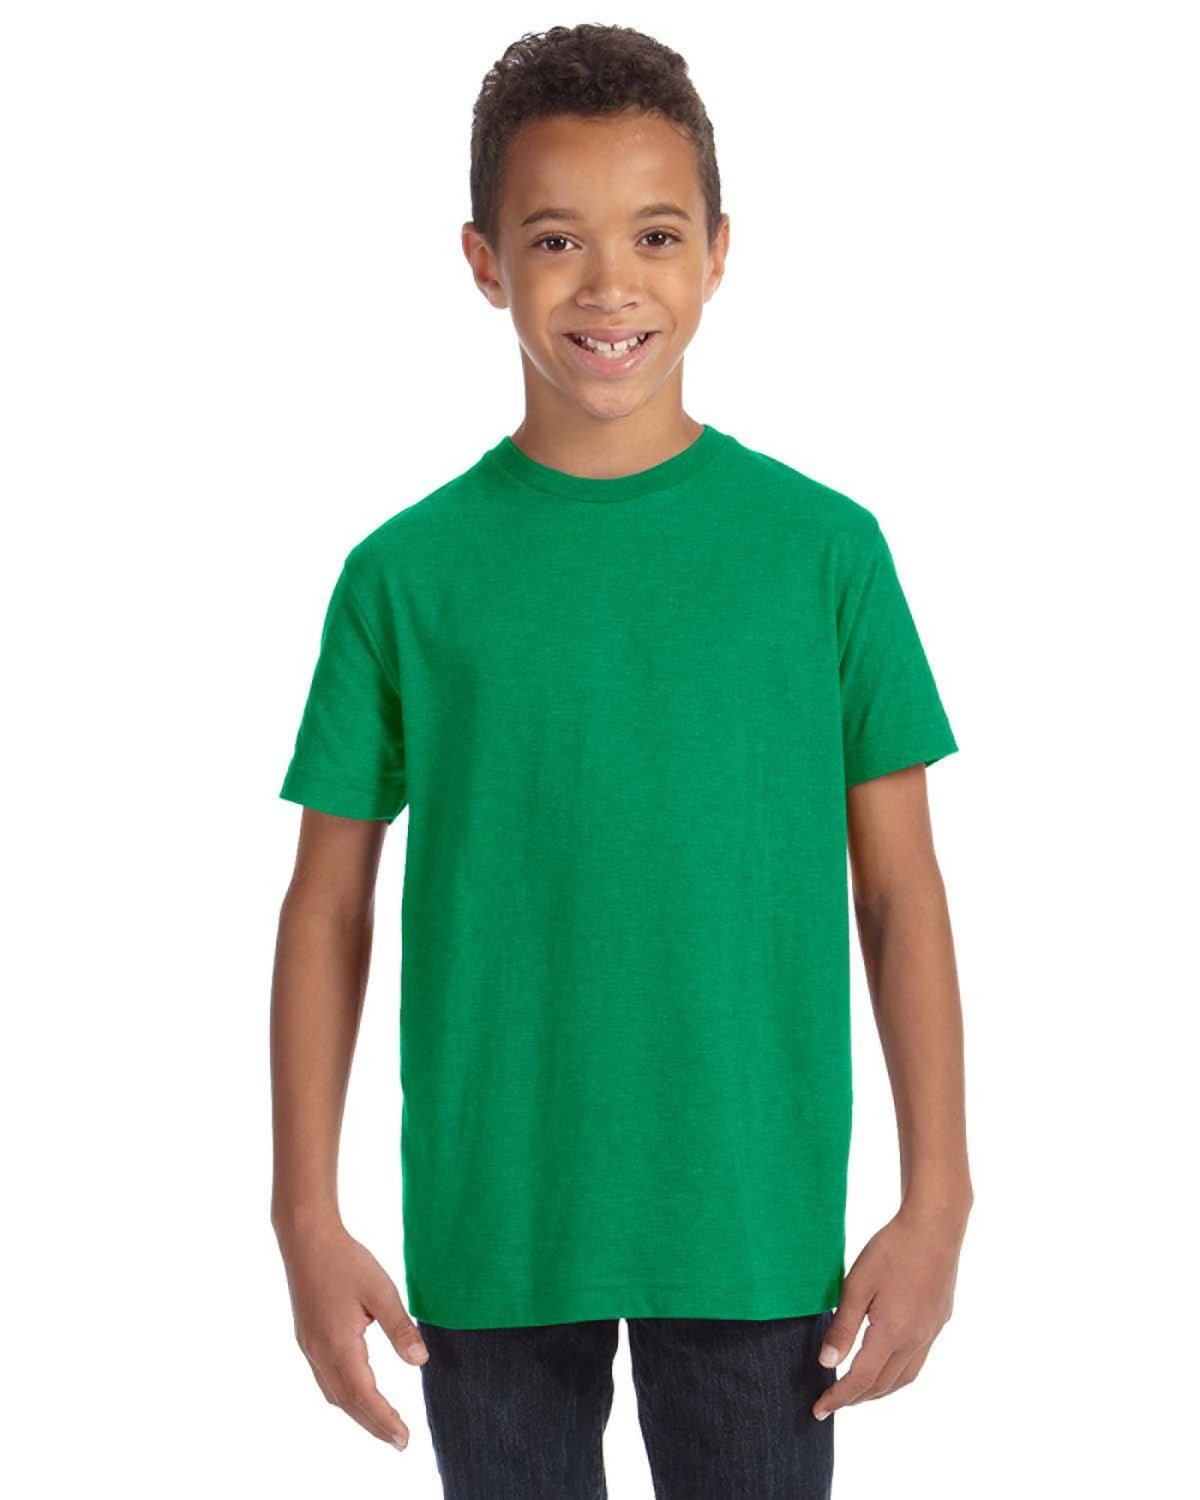 LAT Youth Fine Jersey T-Shirt VINTAGE GREEN